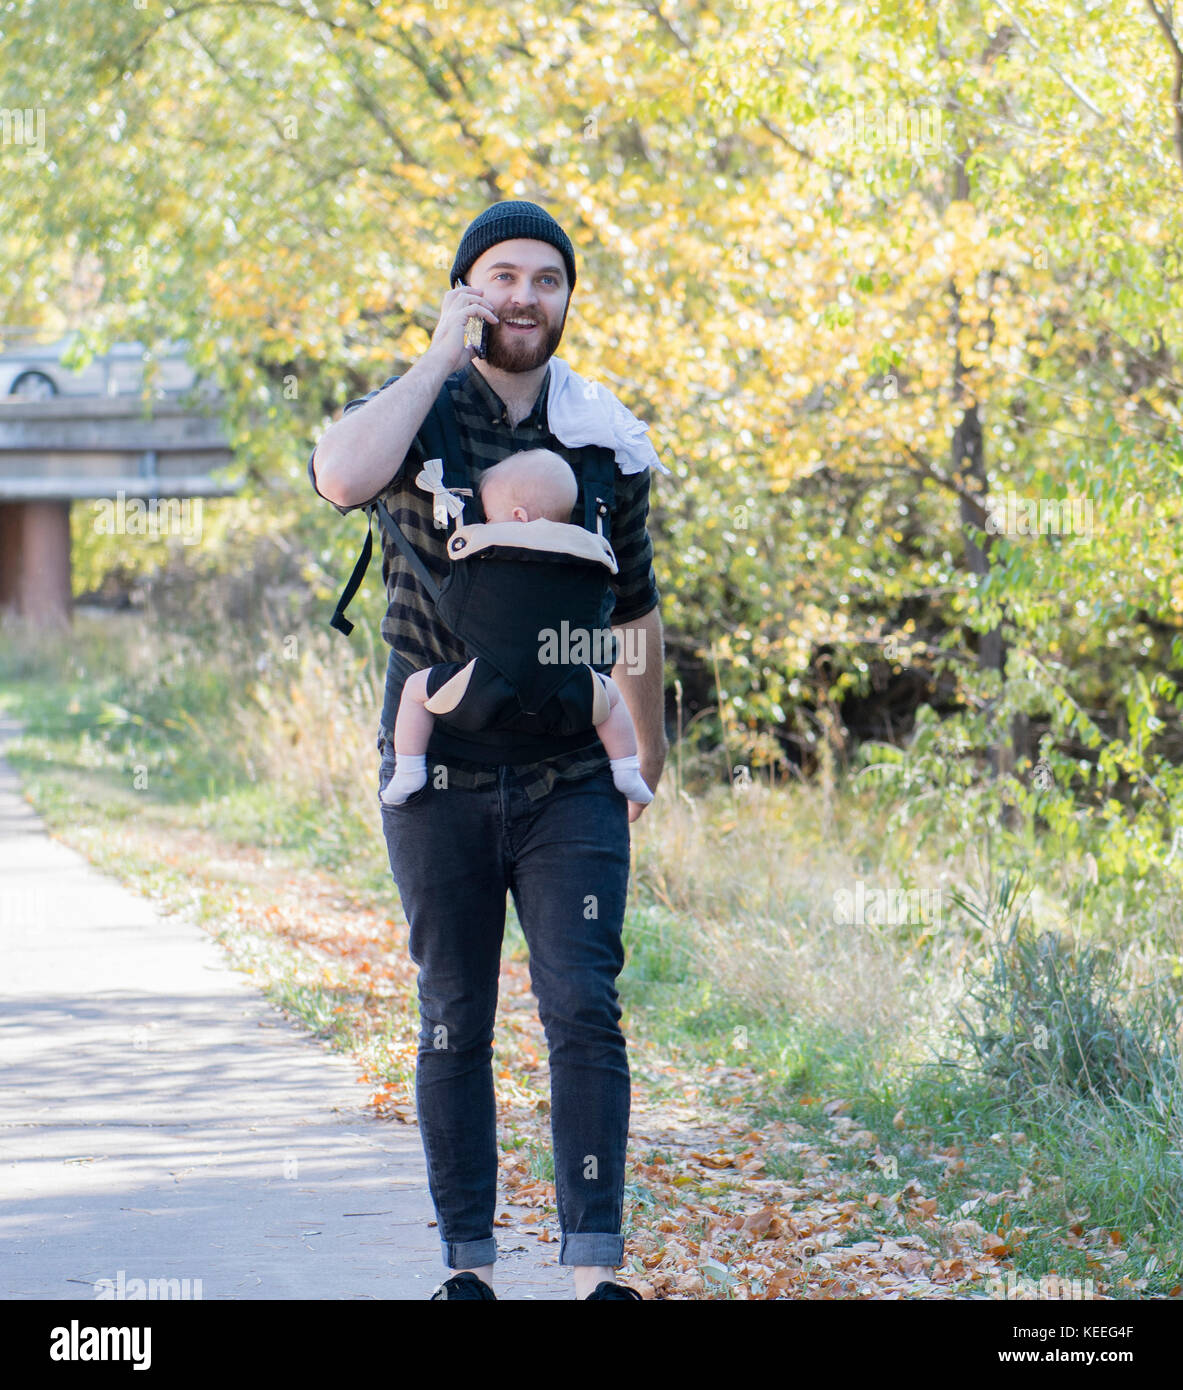 Millennial Dad with Baby in Carrier Outside Talking and Texting - Stock Image